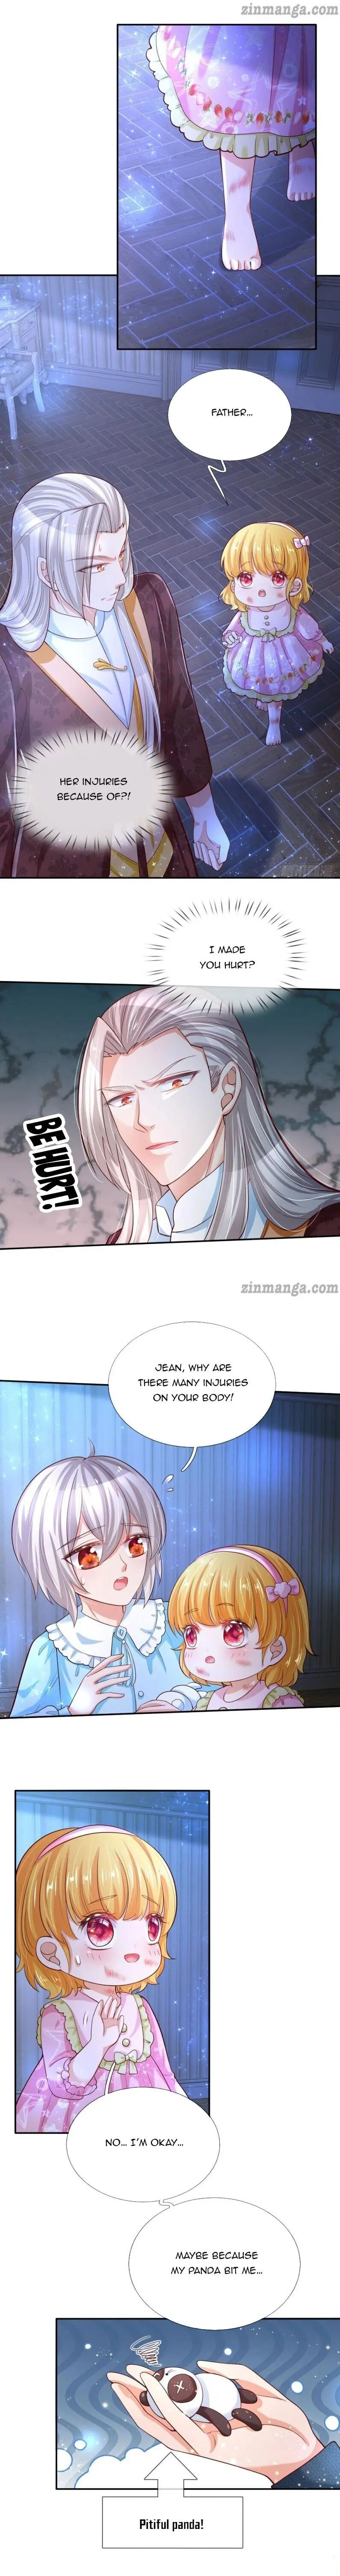 I Became The Emperor's Daughter One Day - chapter 94 - #3